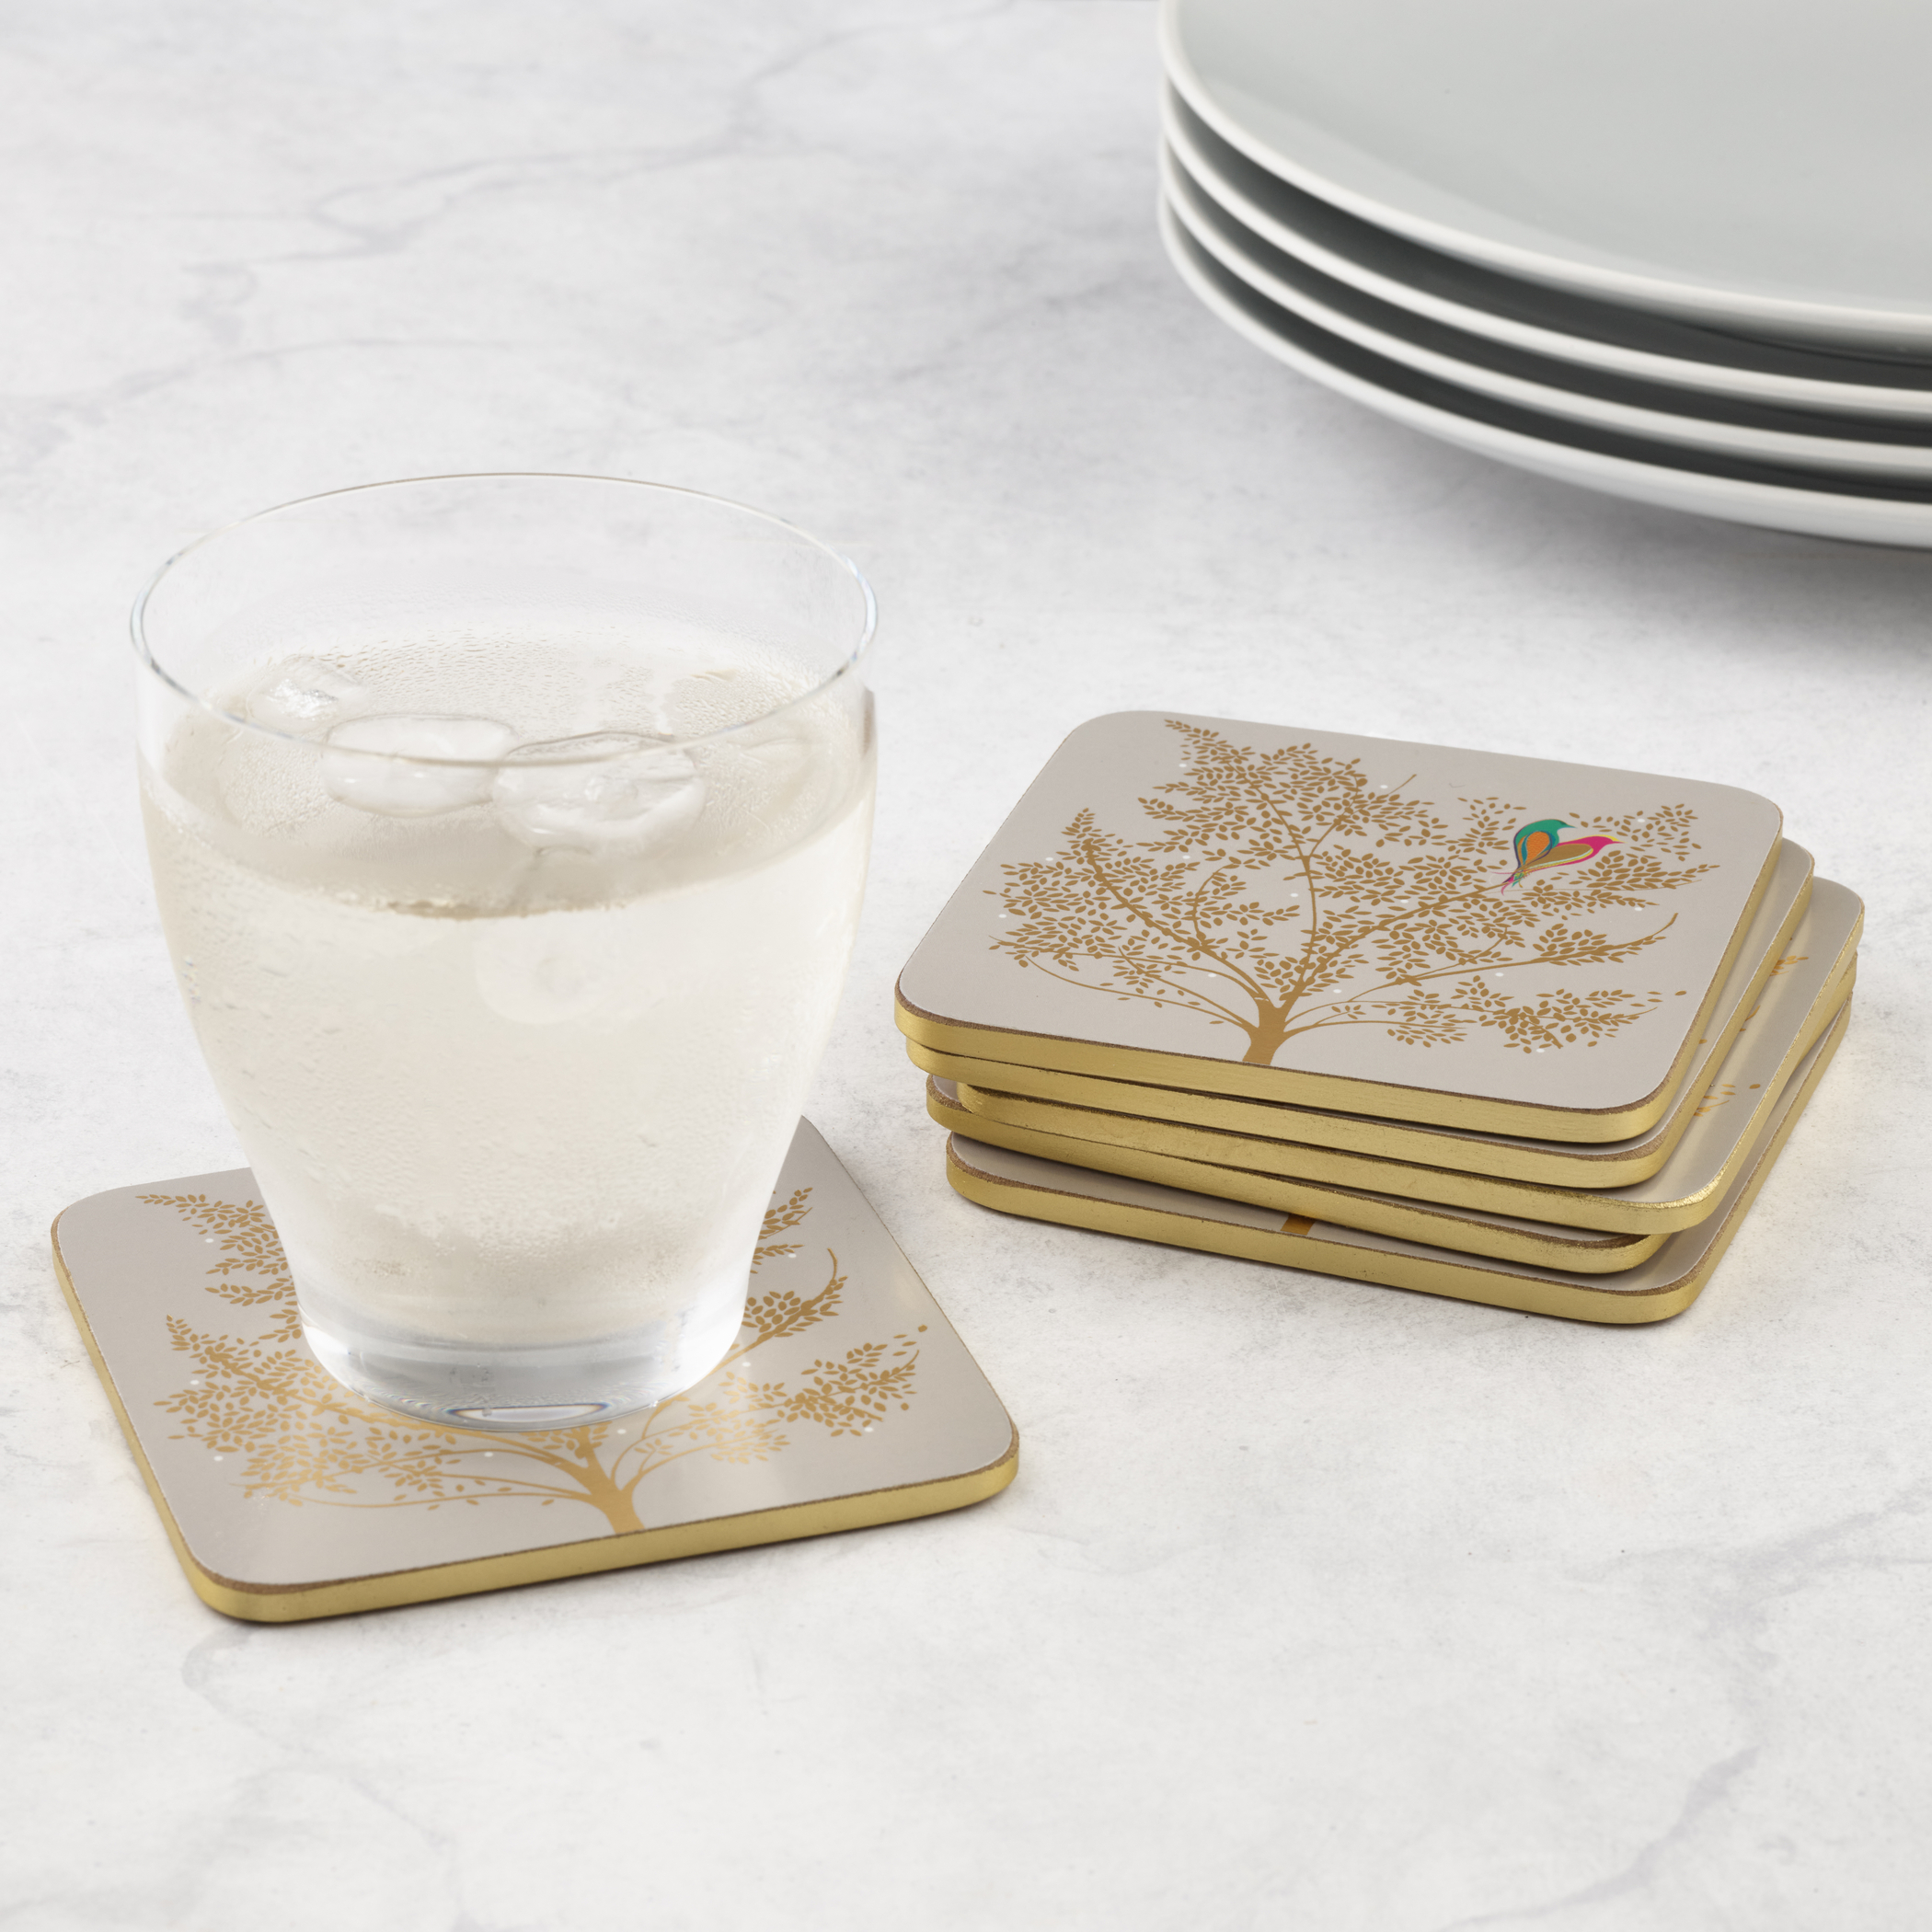 Sara Miller London for Pimpernel Chelsea Collection Coasters Set of 6 Light Grey image number 4